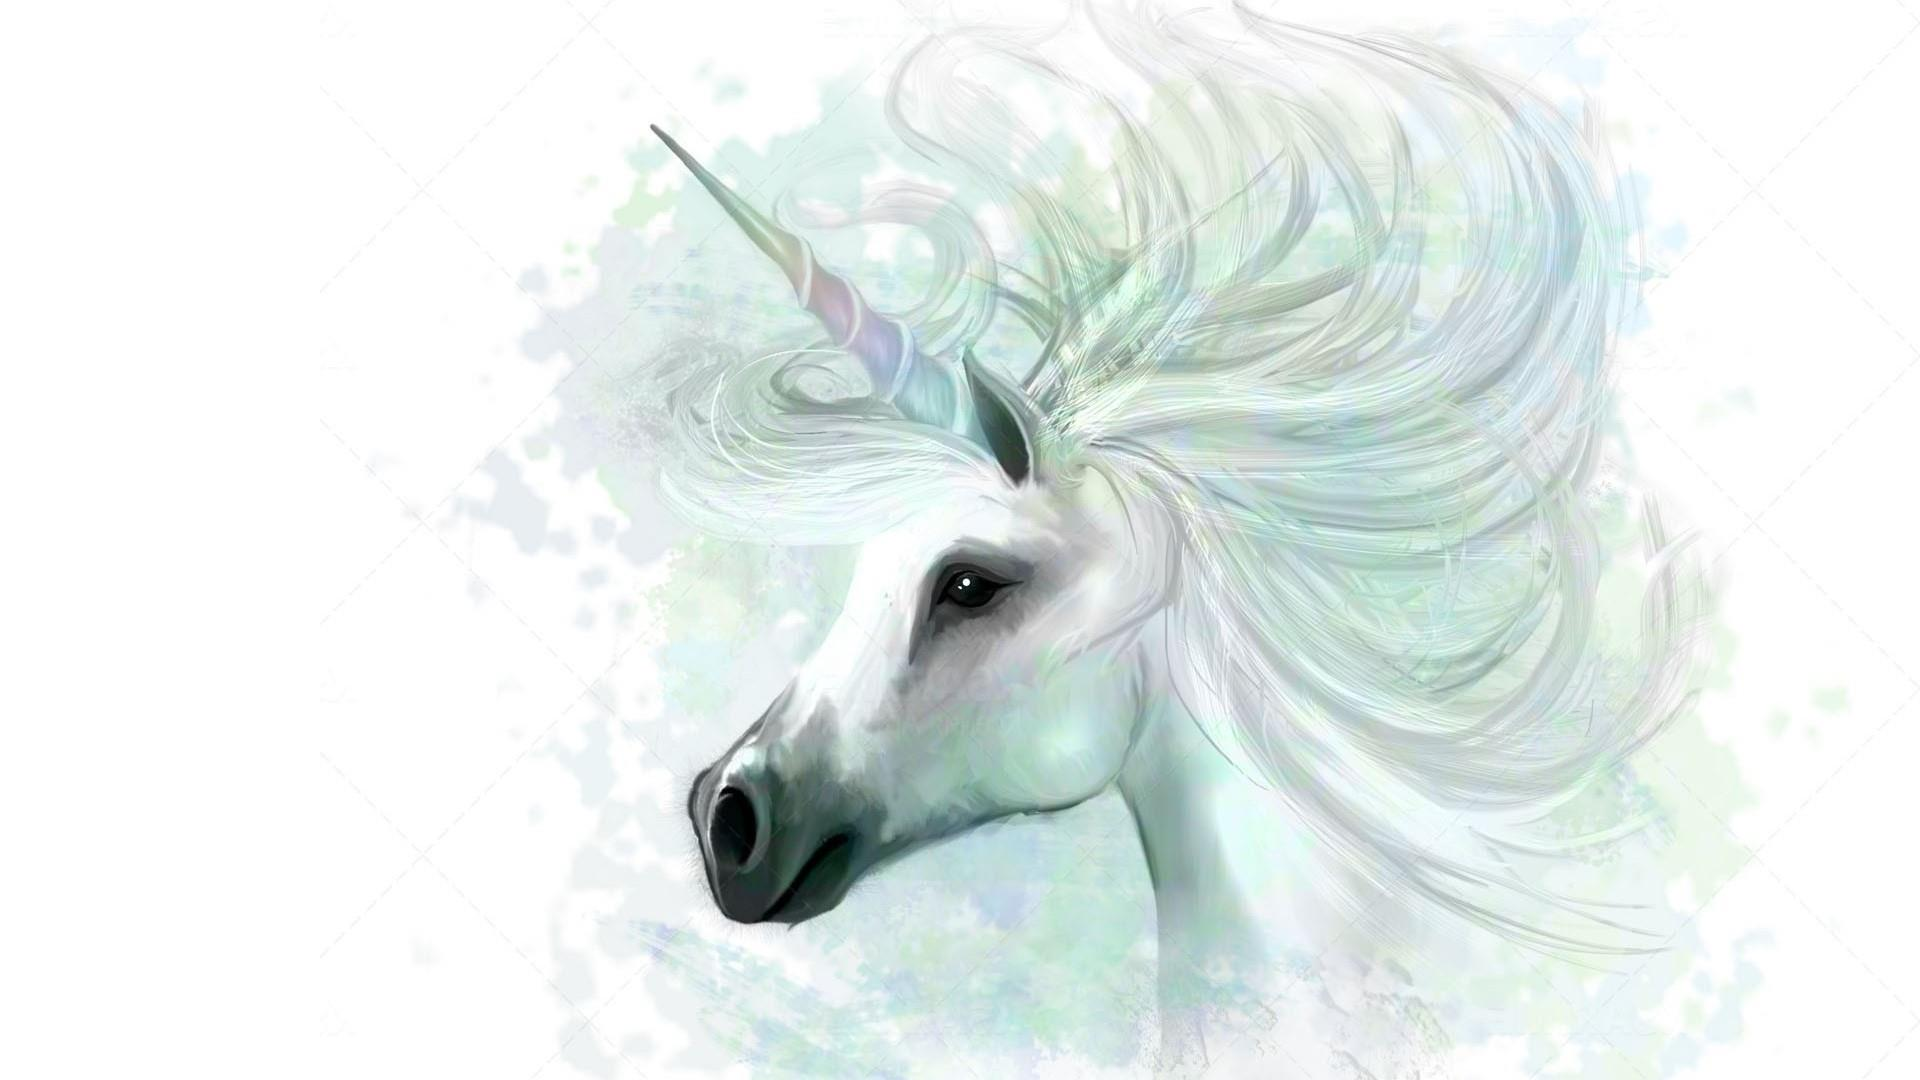 unicorn desktop background